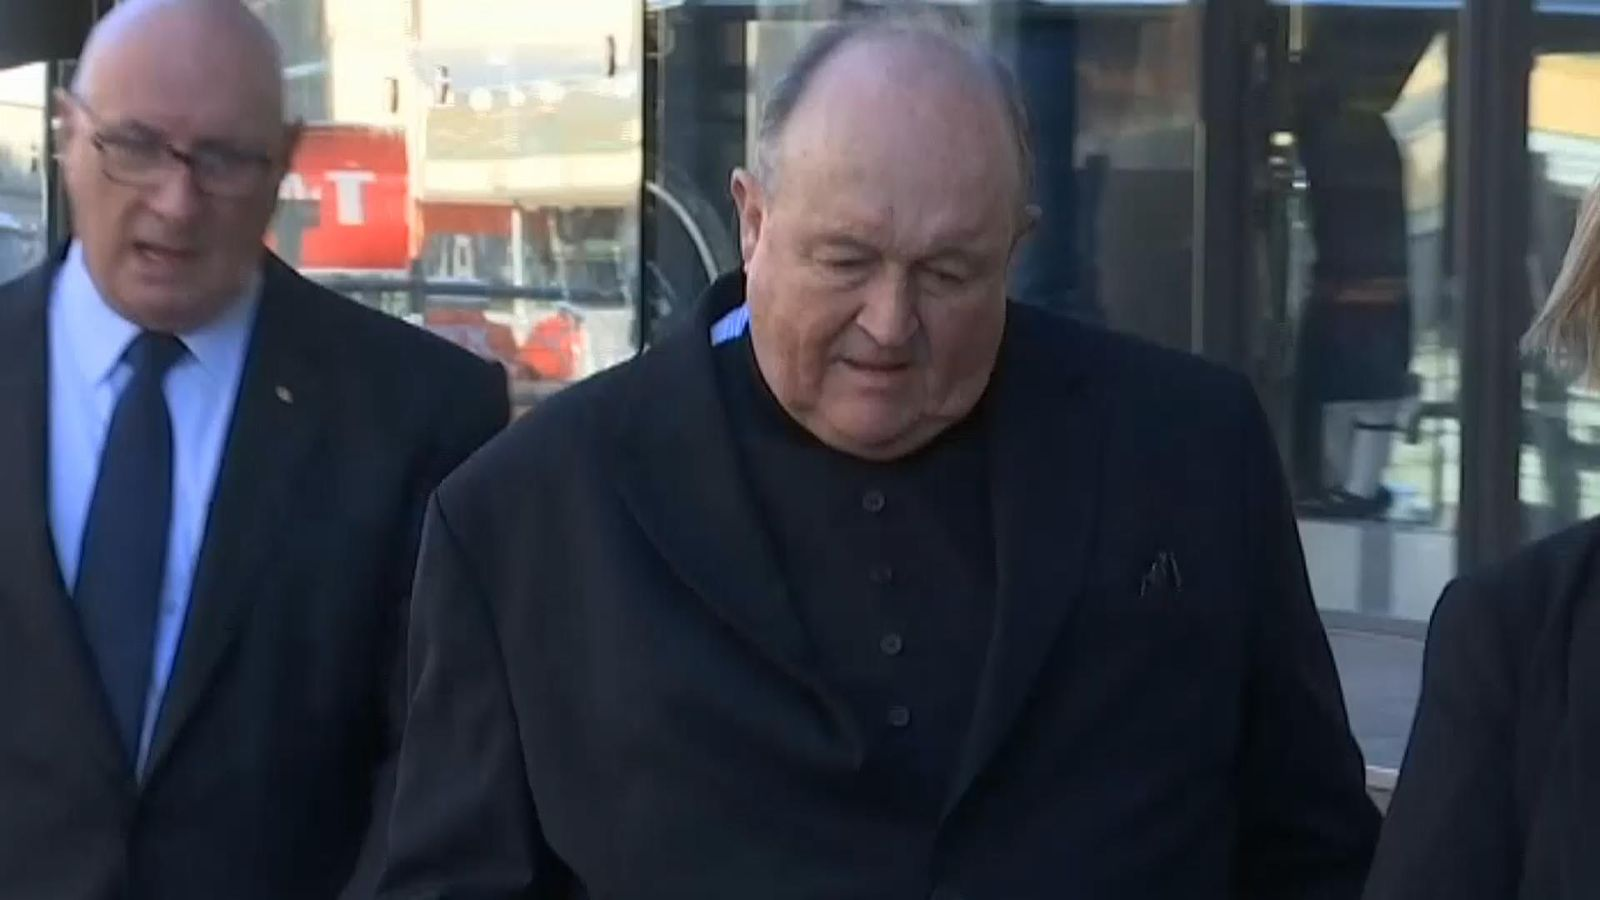 Archbishop Philip Wilson convicted over child sex abuse